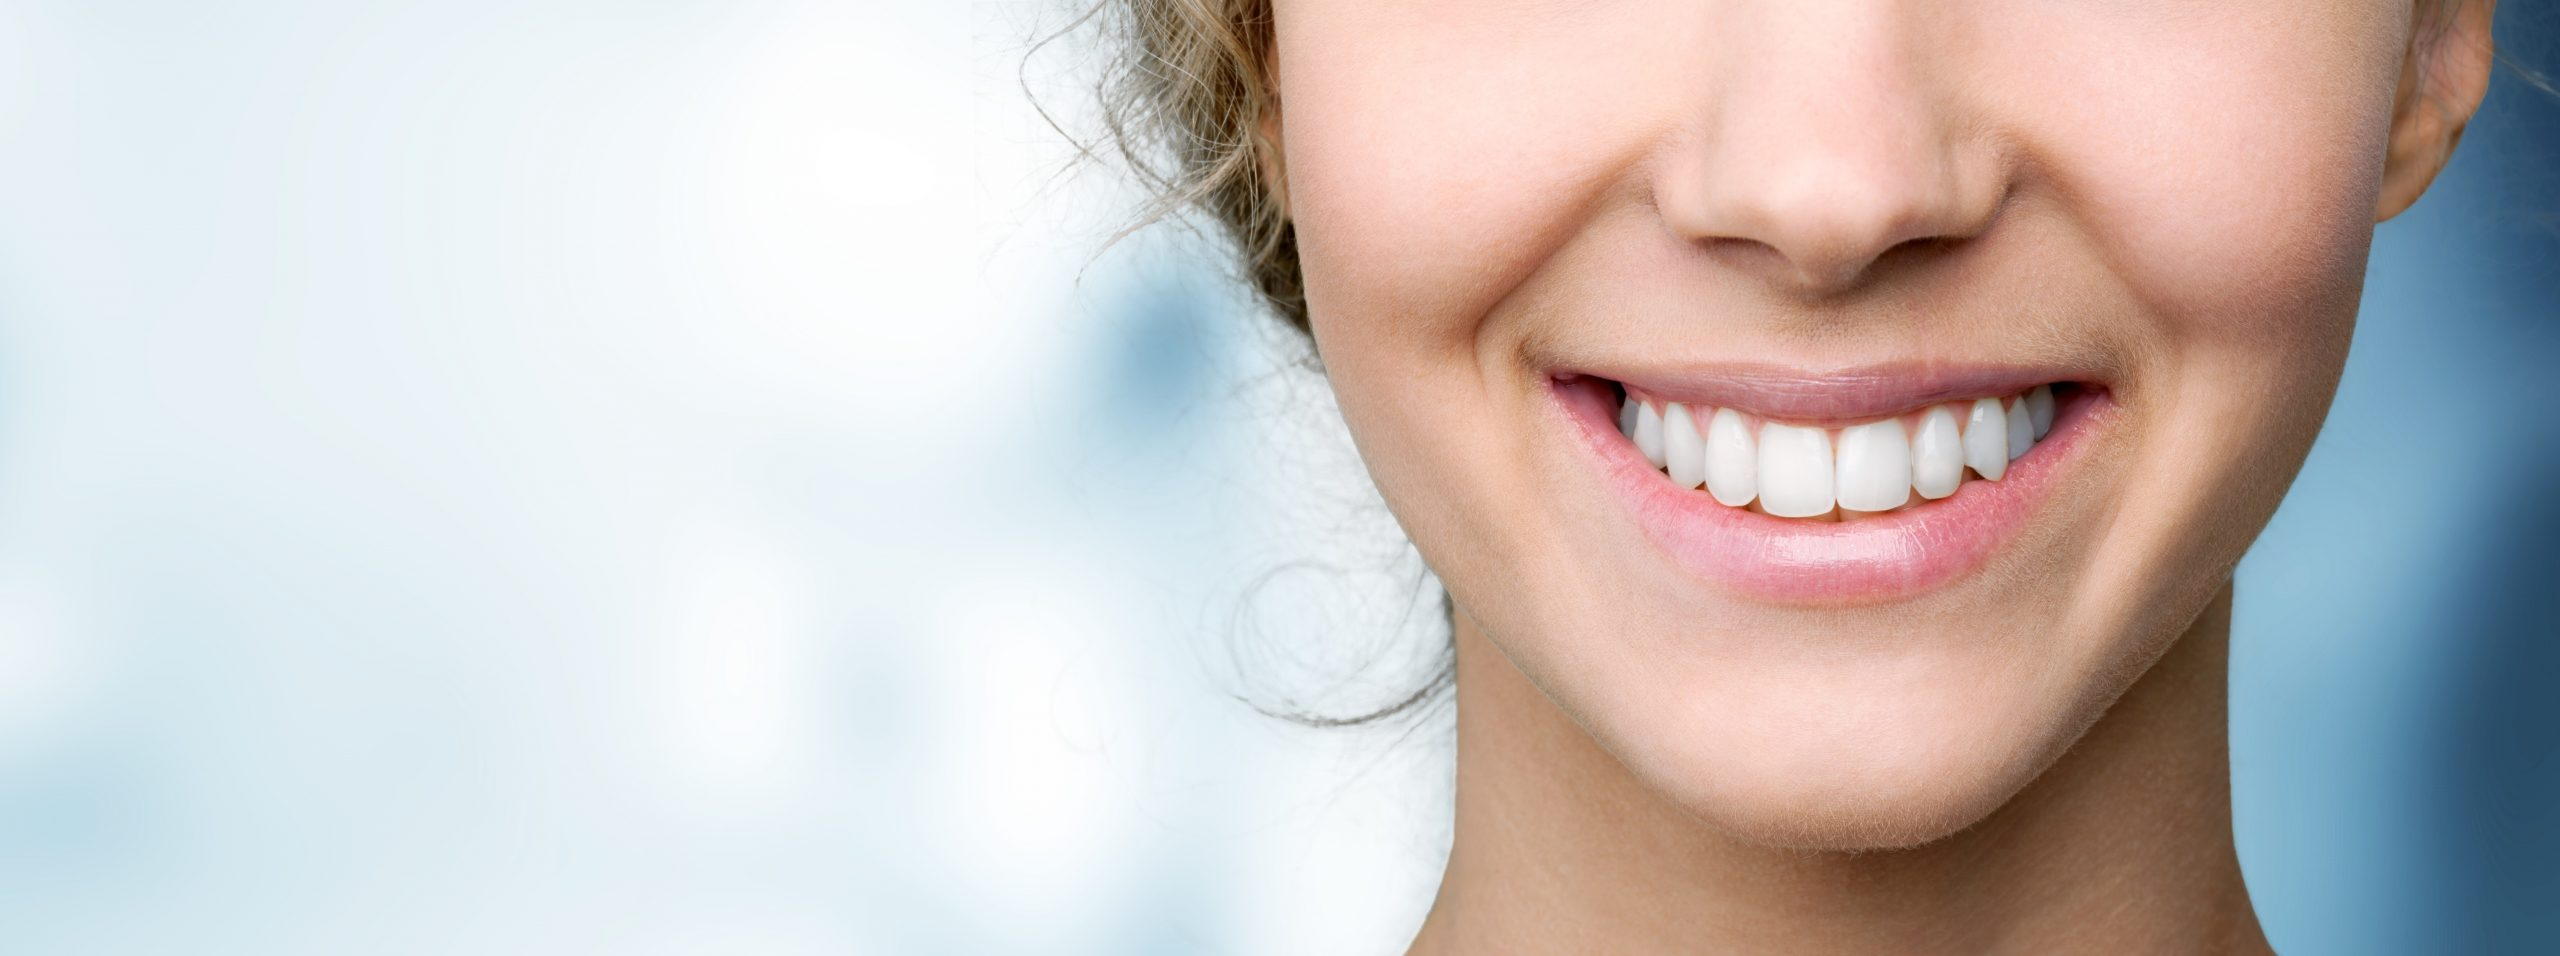 """Lea Ellermeier, CEO of 2C MedTech, on """"The Reasons We Smile"""" with Dr. Kvito"""